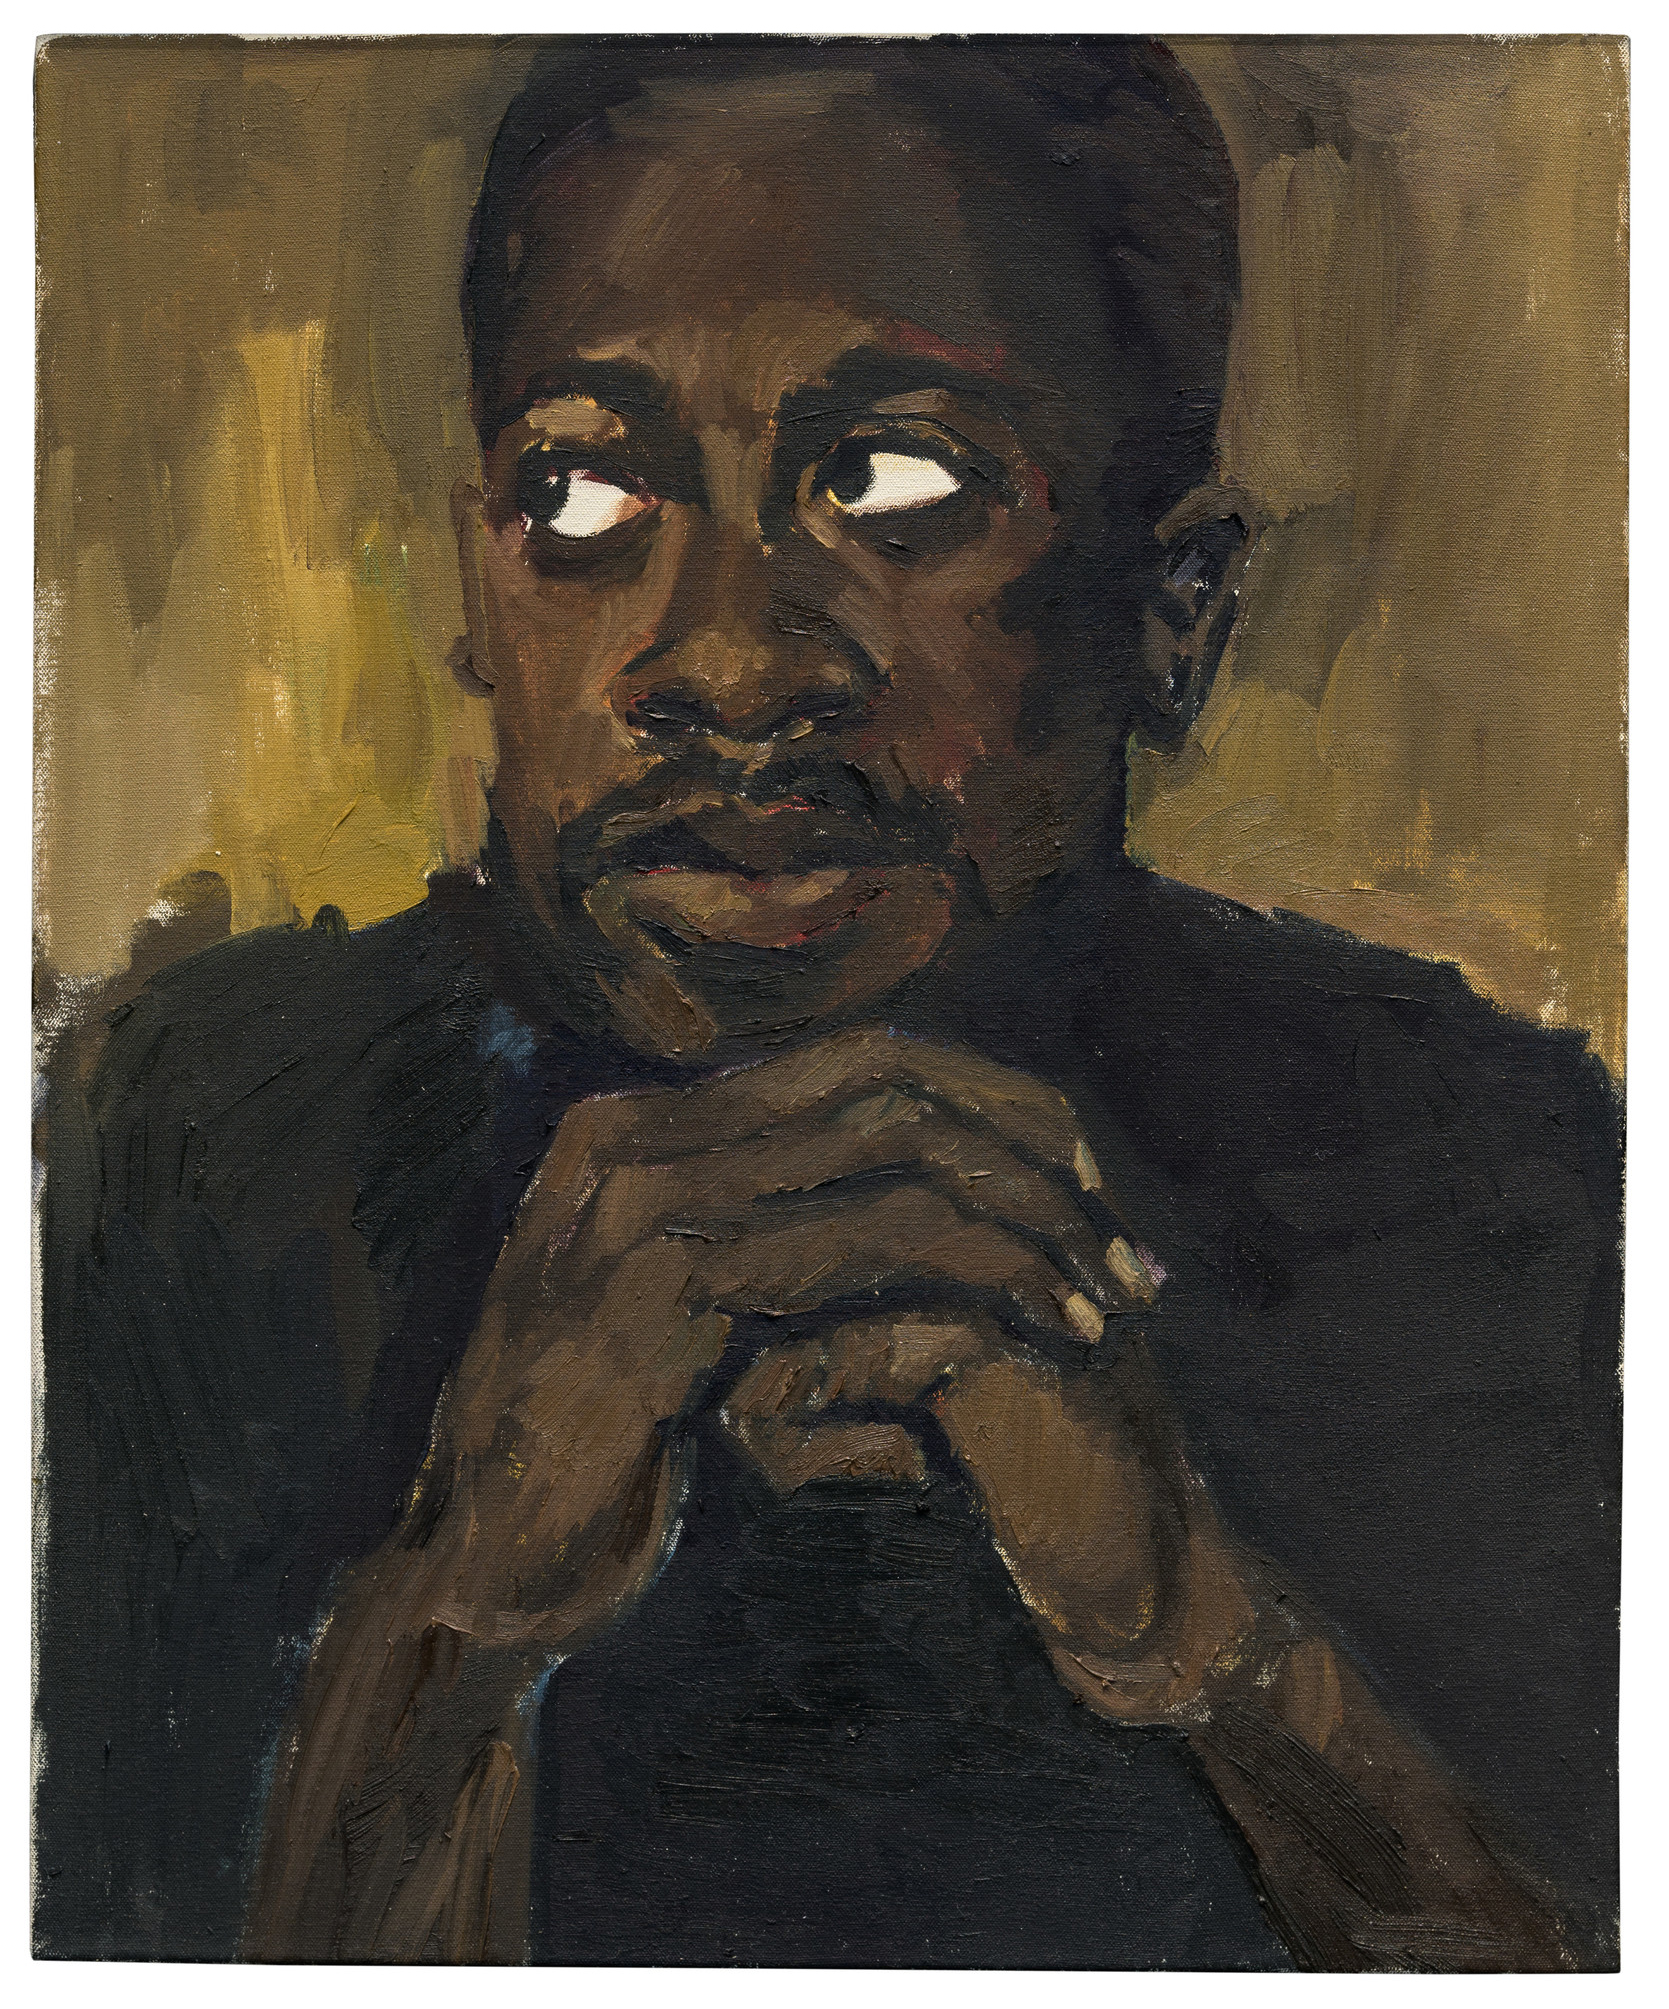 Lynette Yiadom-Boakye, A Few For the Many, 2013, Los Angeles County Museum of Art, purchased with funds provided by Pamela Joyner and Alfred Giuffrida, © Lynette Yiadom-Boakye, courtesy of the artist, Jack Shainman Gallery, New York and Corvi-Mora, London, photo © Museum Associates/LACMA